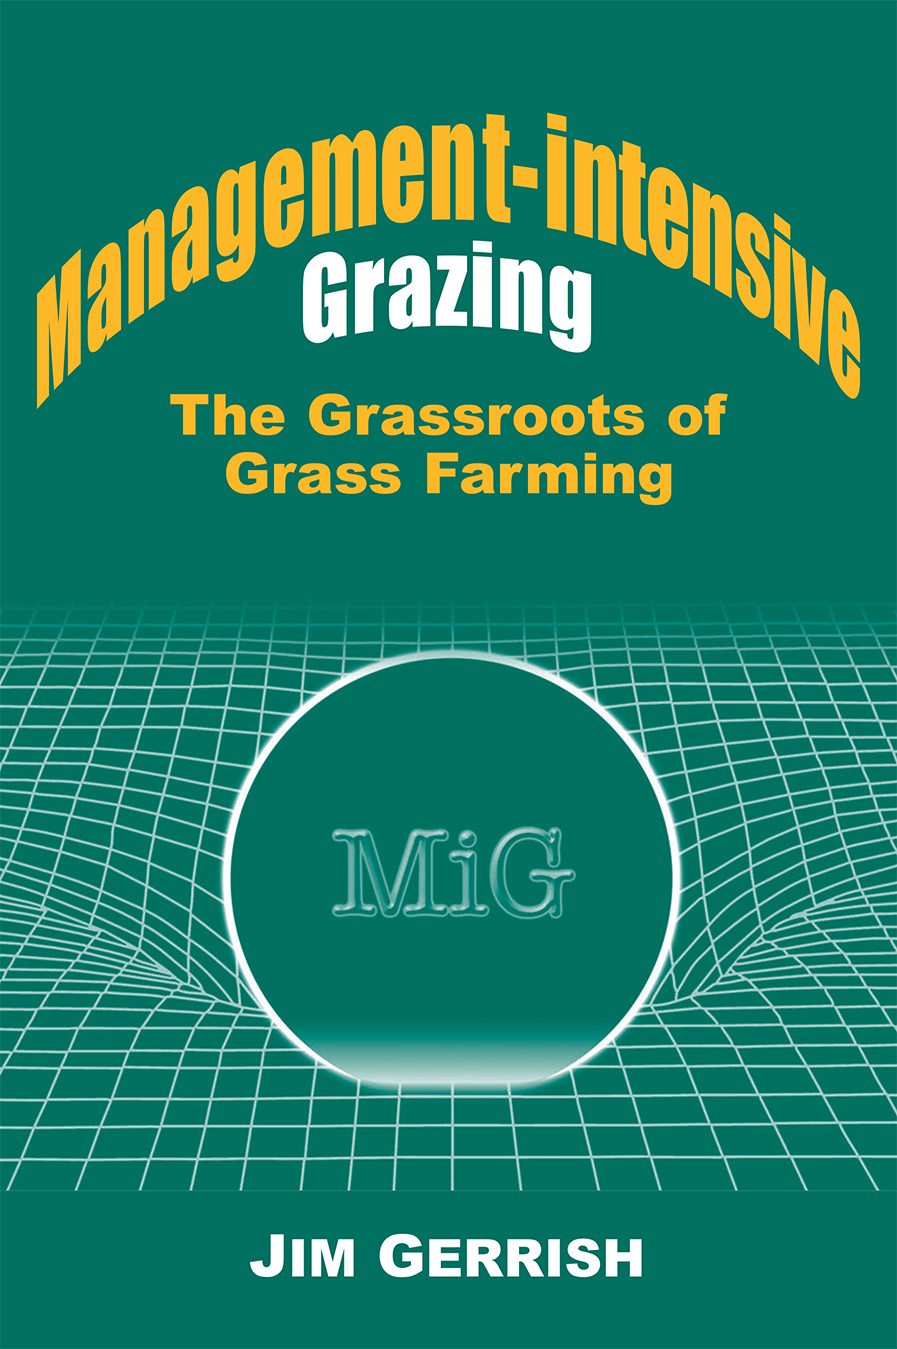 The Management-intensive Grazing cover